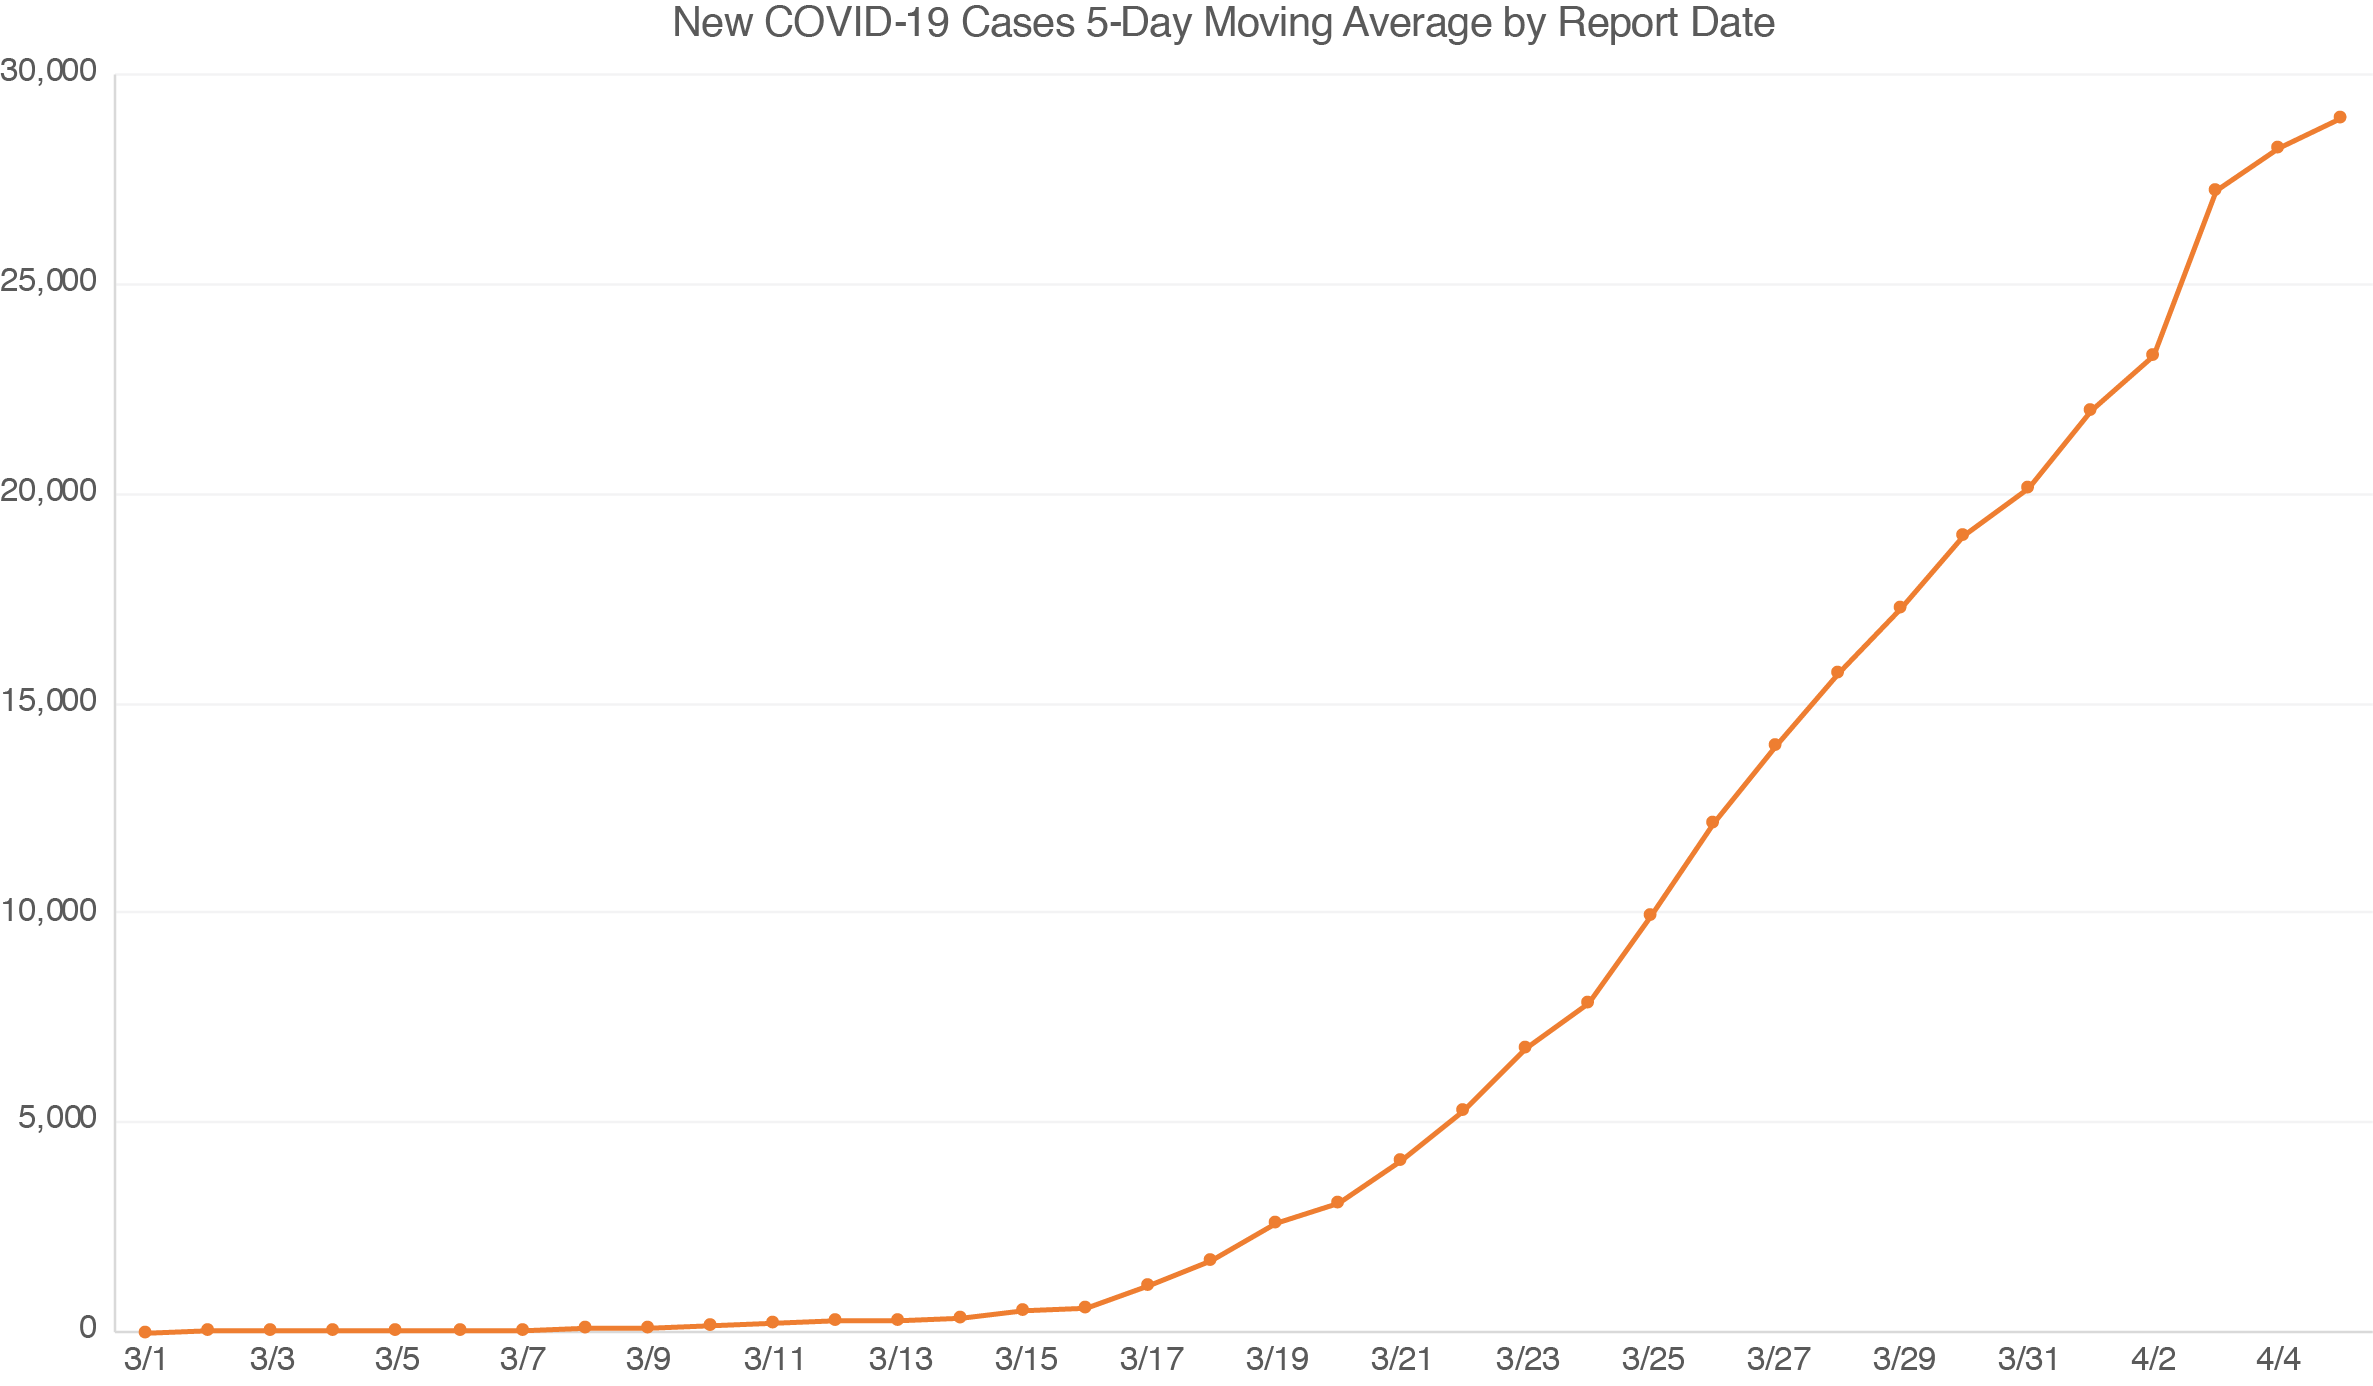 Display New Daily Cases of COVID-19 with Care